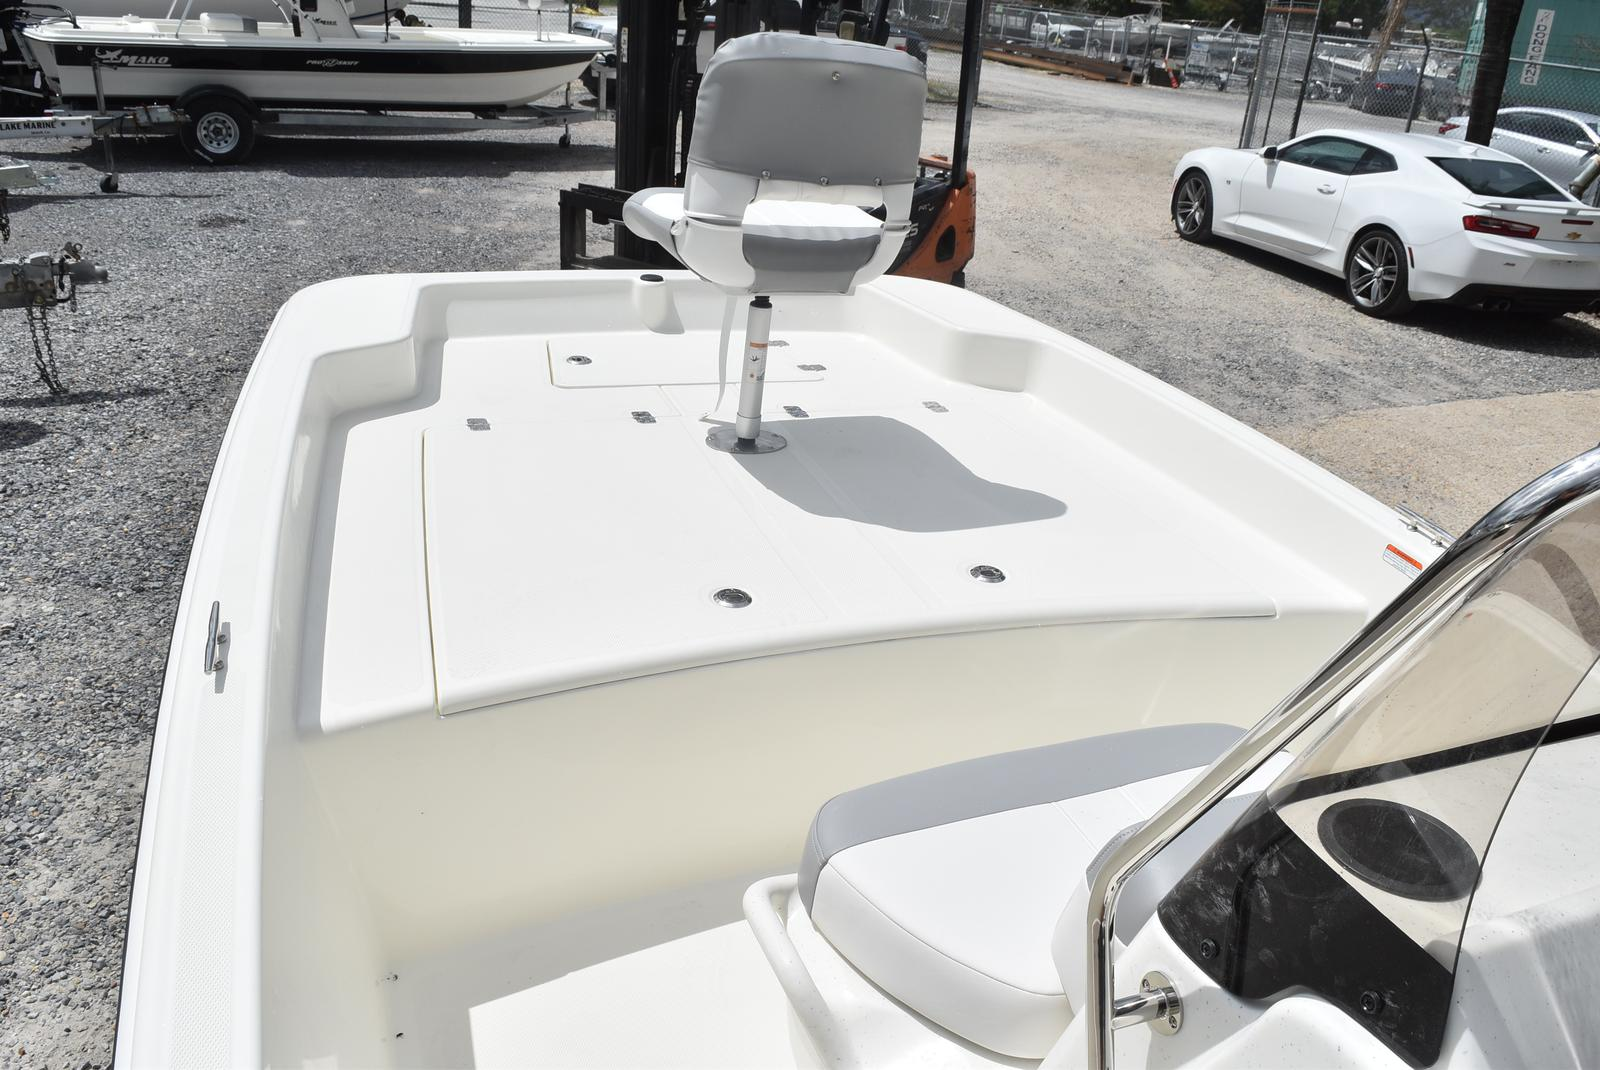 2020 Mako boat for sale, model of the boat is Pro Skiff 17, 75 ELPT & Image # 408 of 702